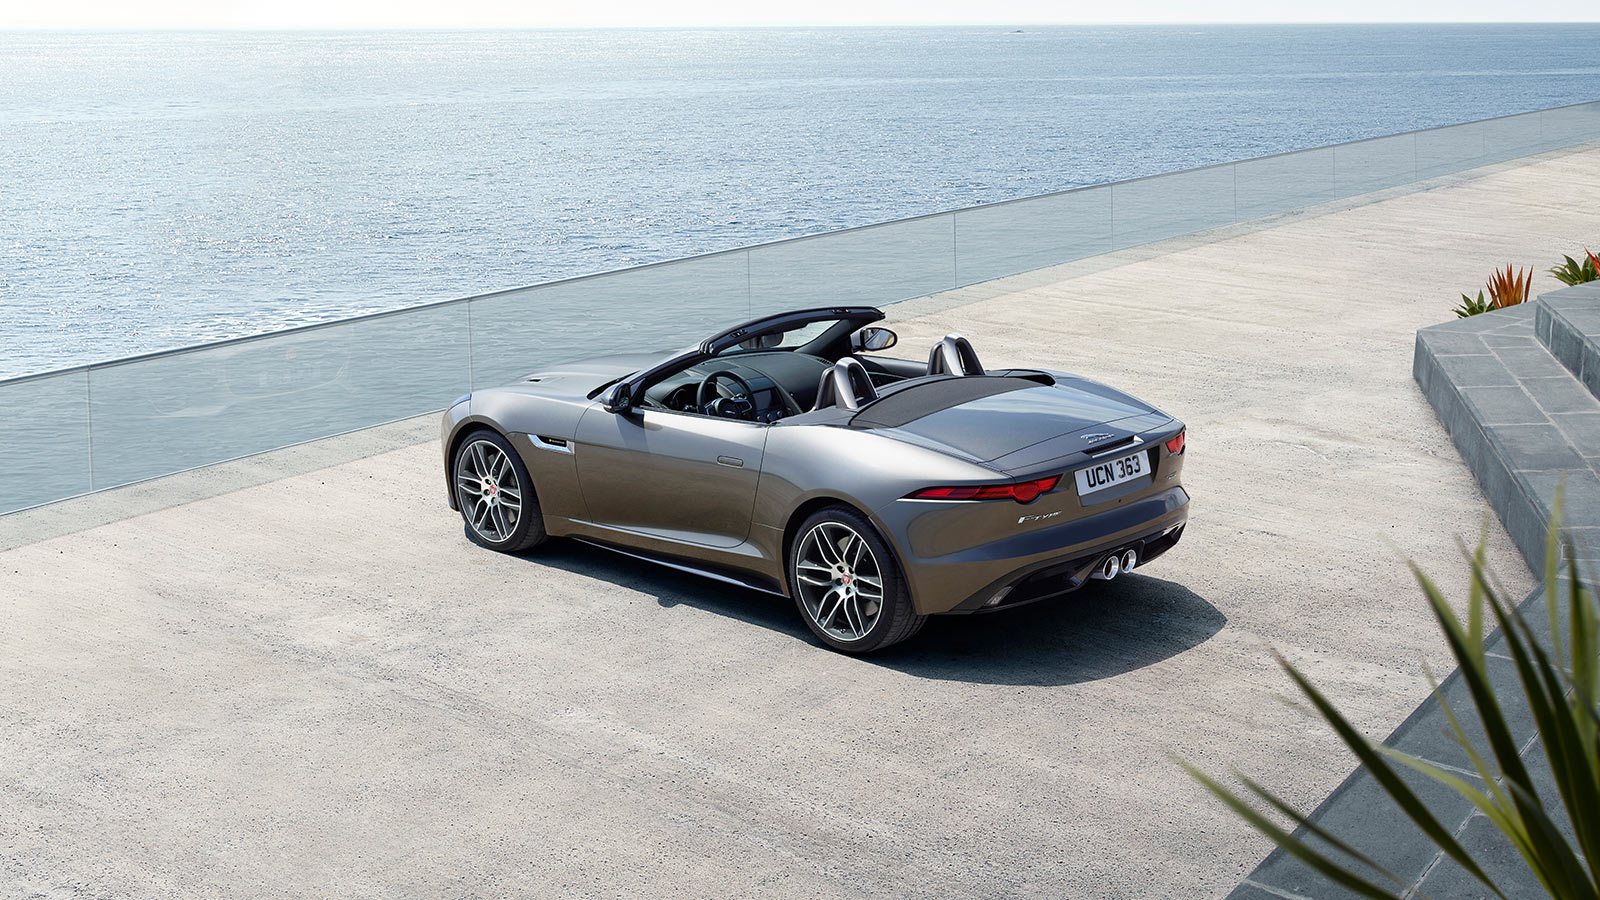 Ownership FTYPE parked on a beach driveway, with sea in front of it.